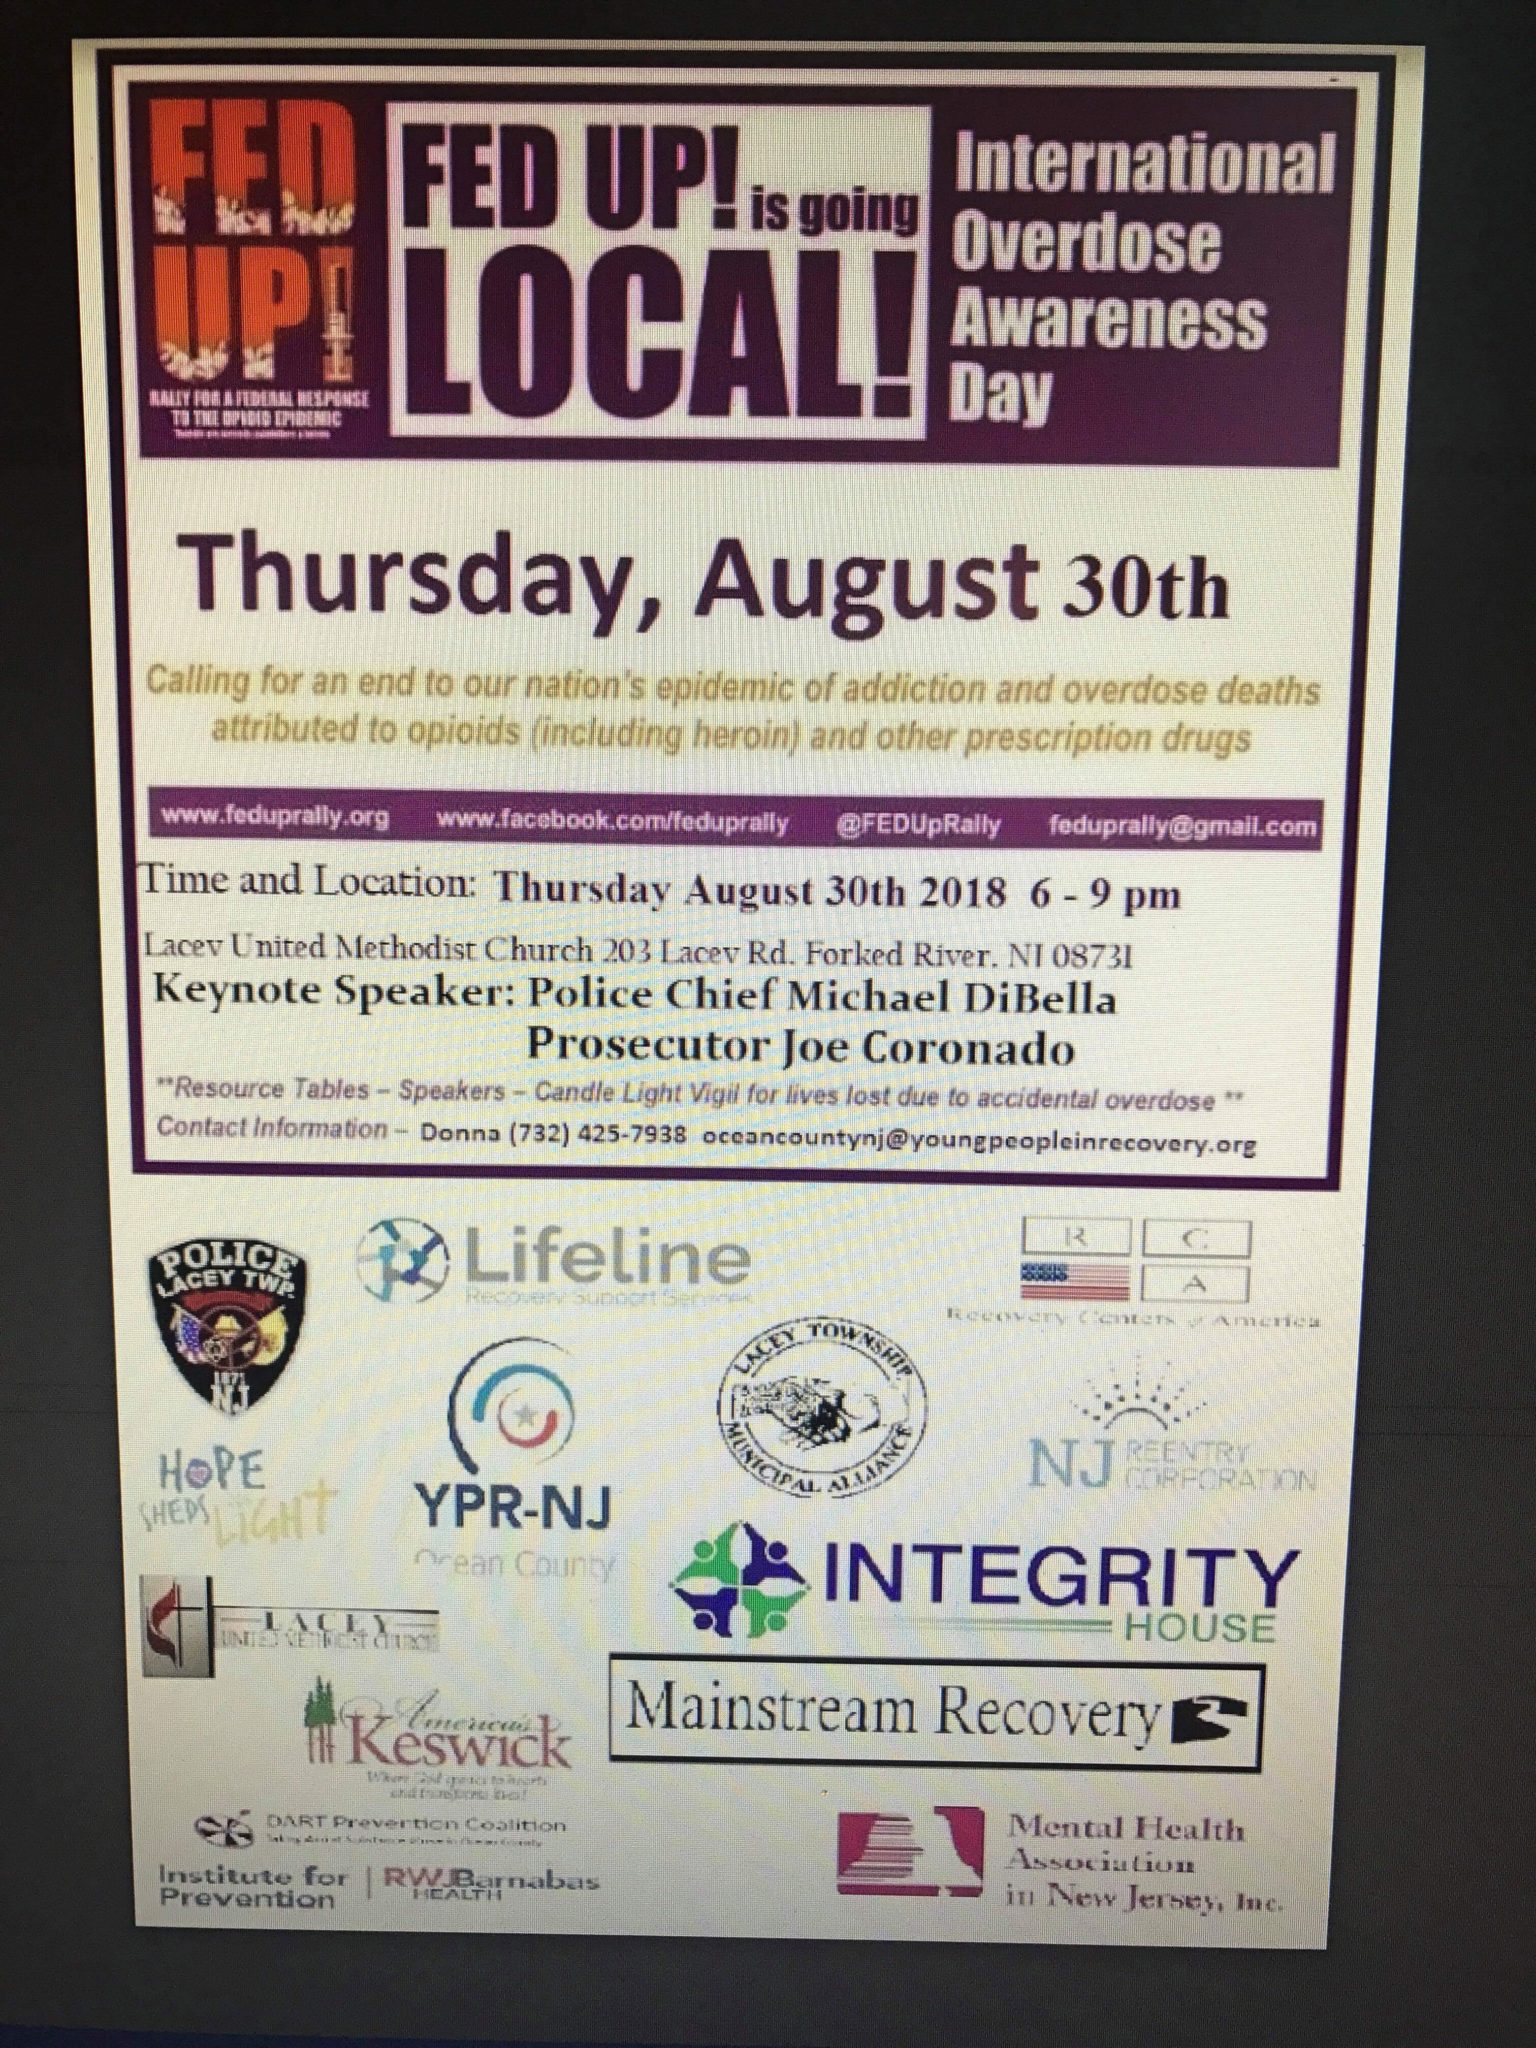 Thursday 08/30: International Overdose Awareness Day